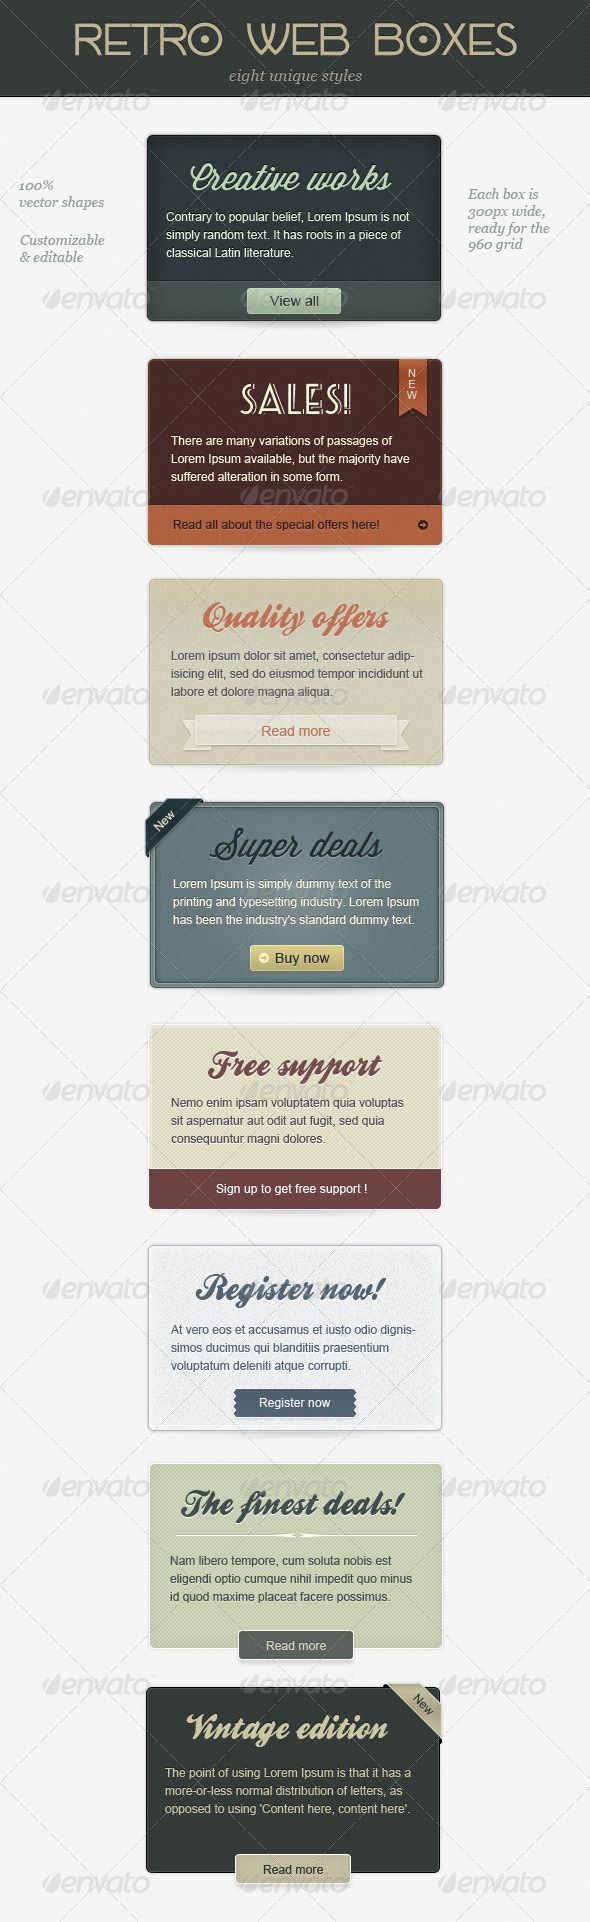 Retro Web Boxes Template PSD | Buy and Download: http://graphicriver.net/item/retro-web-boxes/1922916?WT.ac=category_thumb&WT.z_author=loreleyyy&ref=ksioks